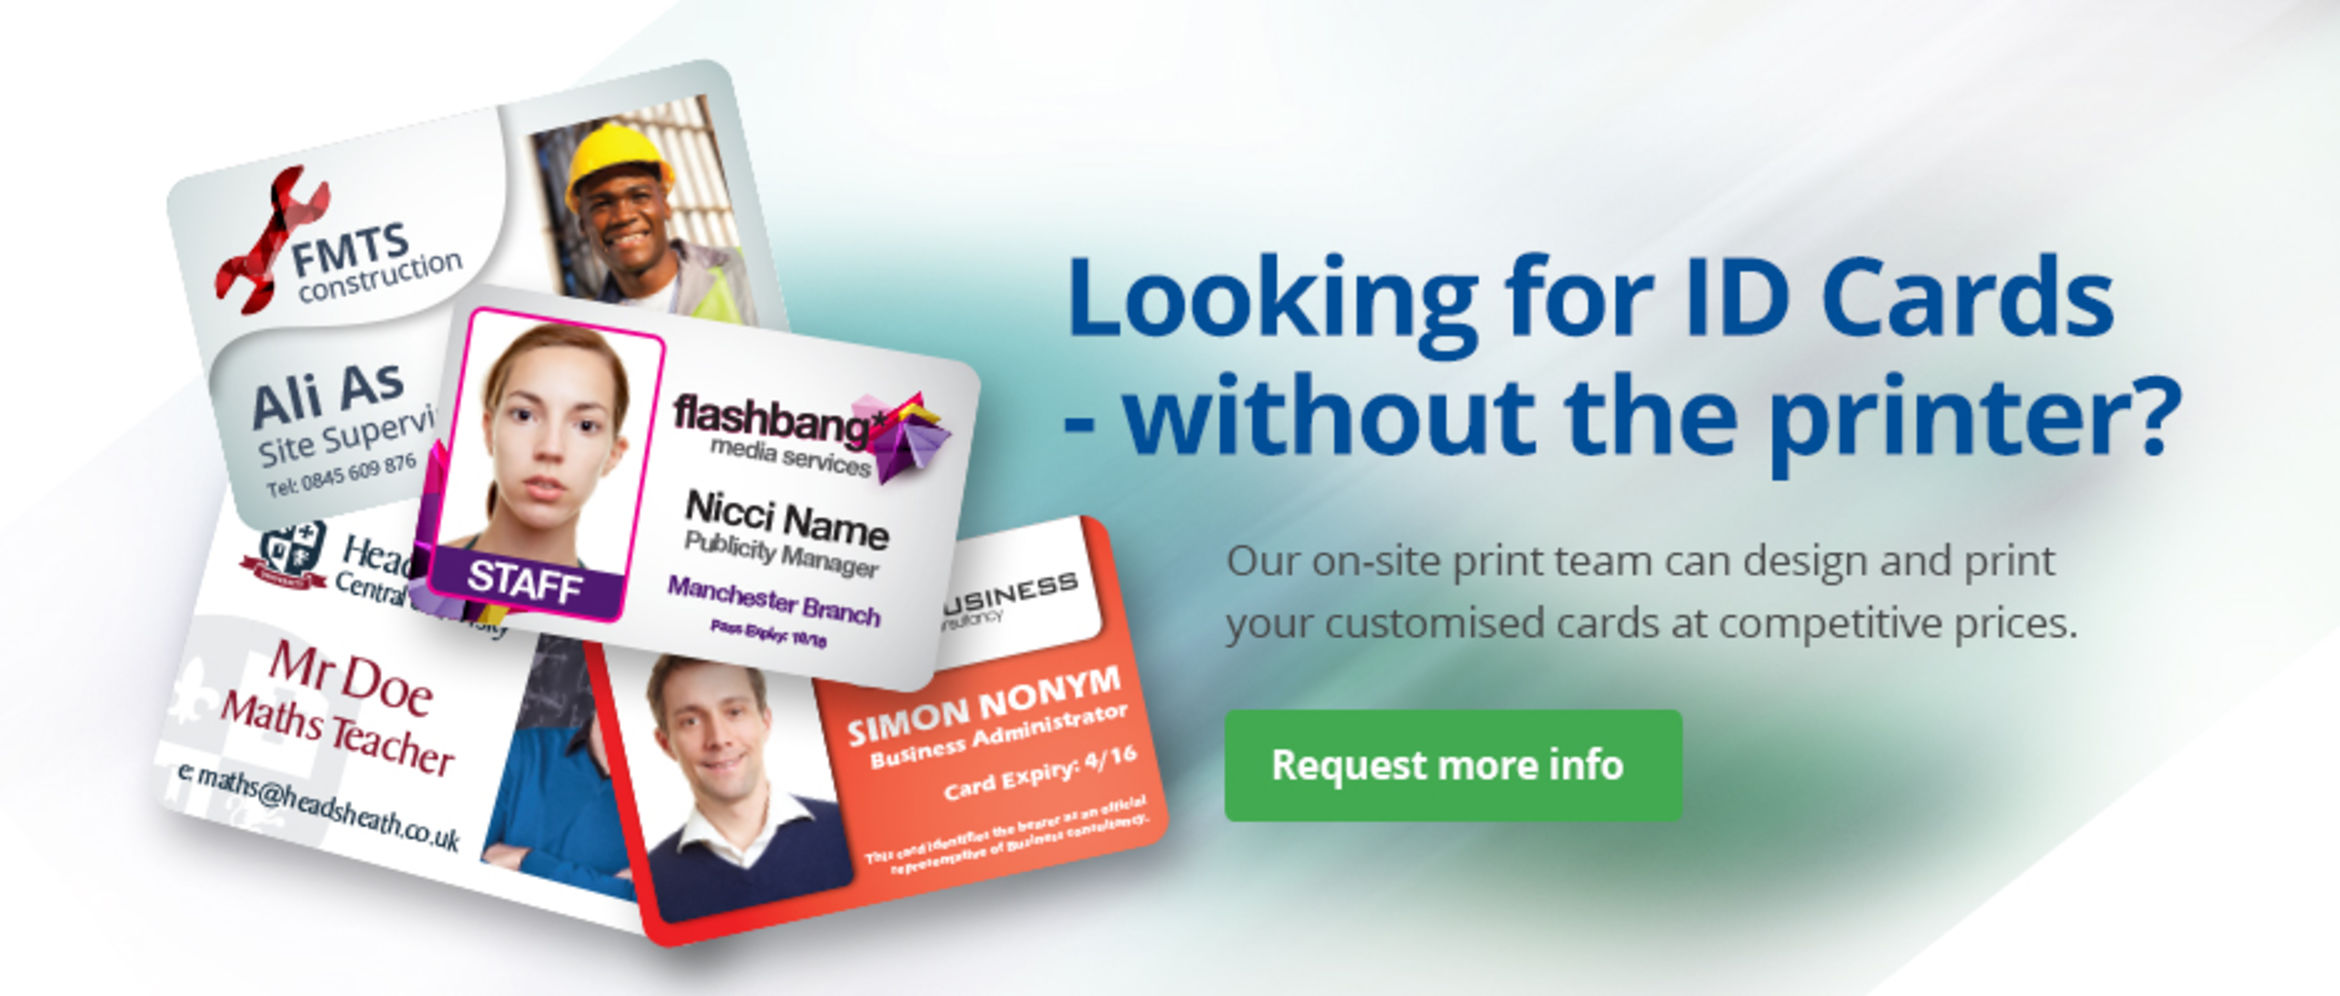 Looking for ID Cards - without the printer?